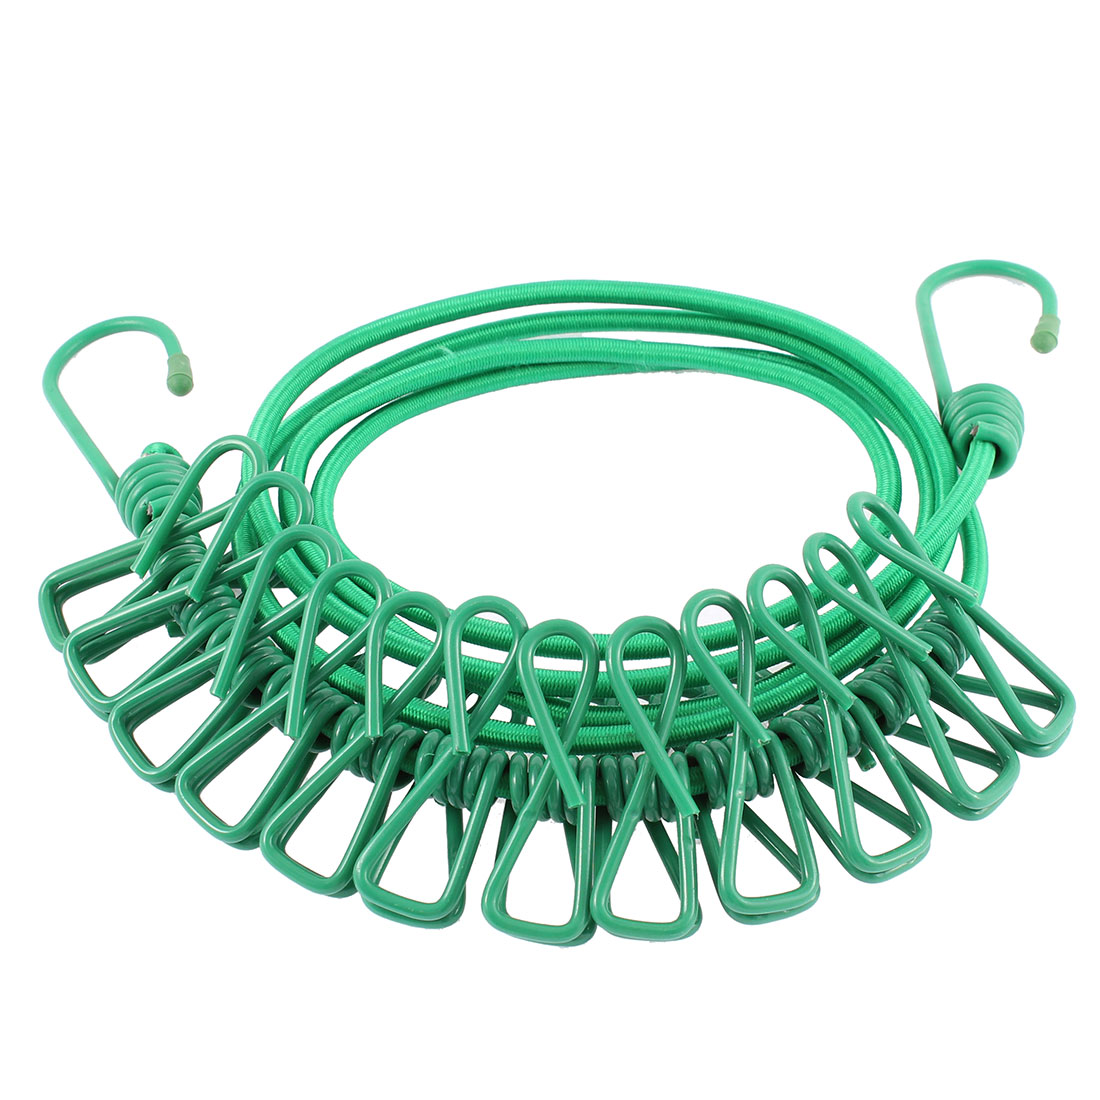 Household Travel Elastic Clothesline Rope Line String Green w 12 Clips